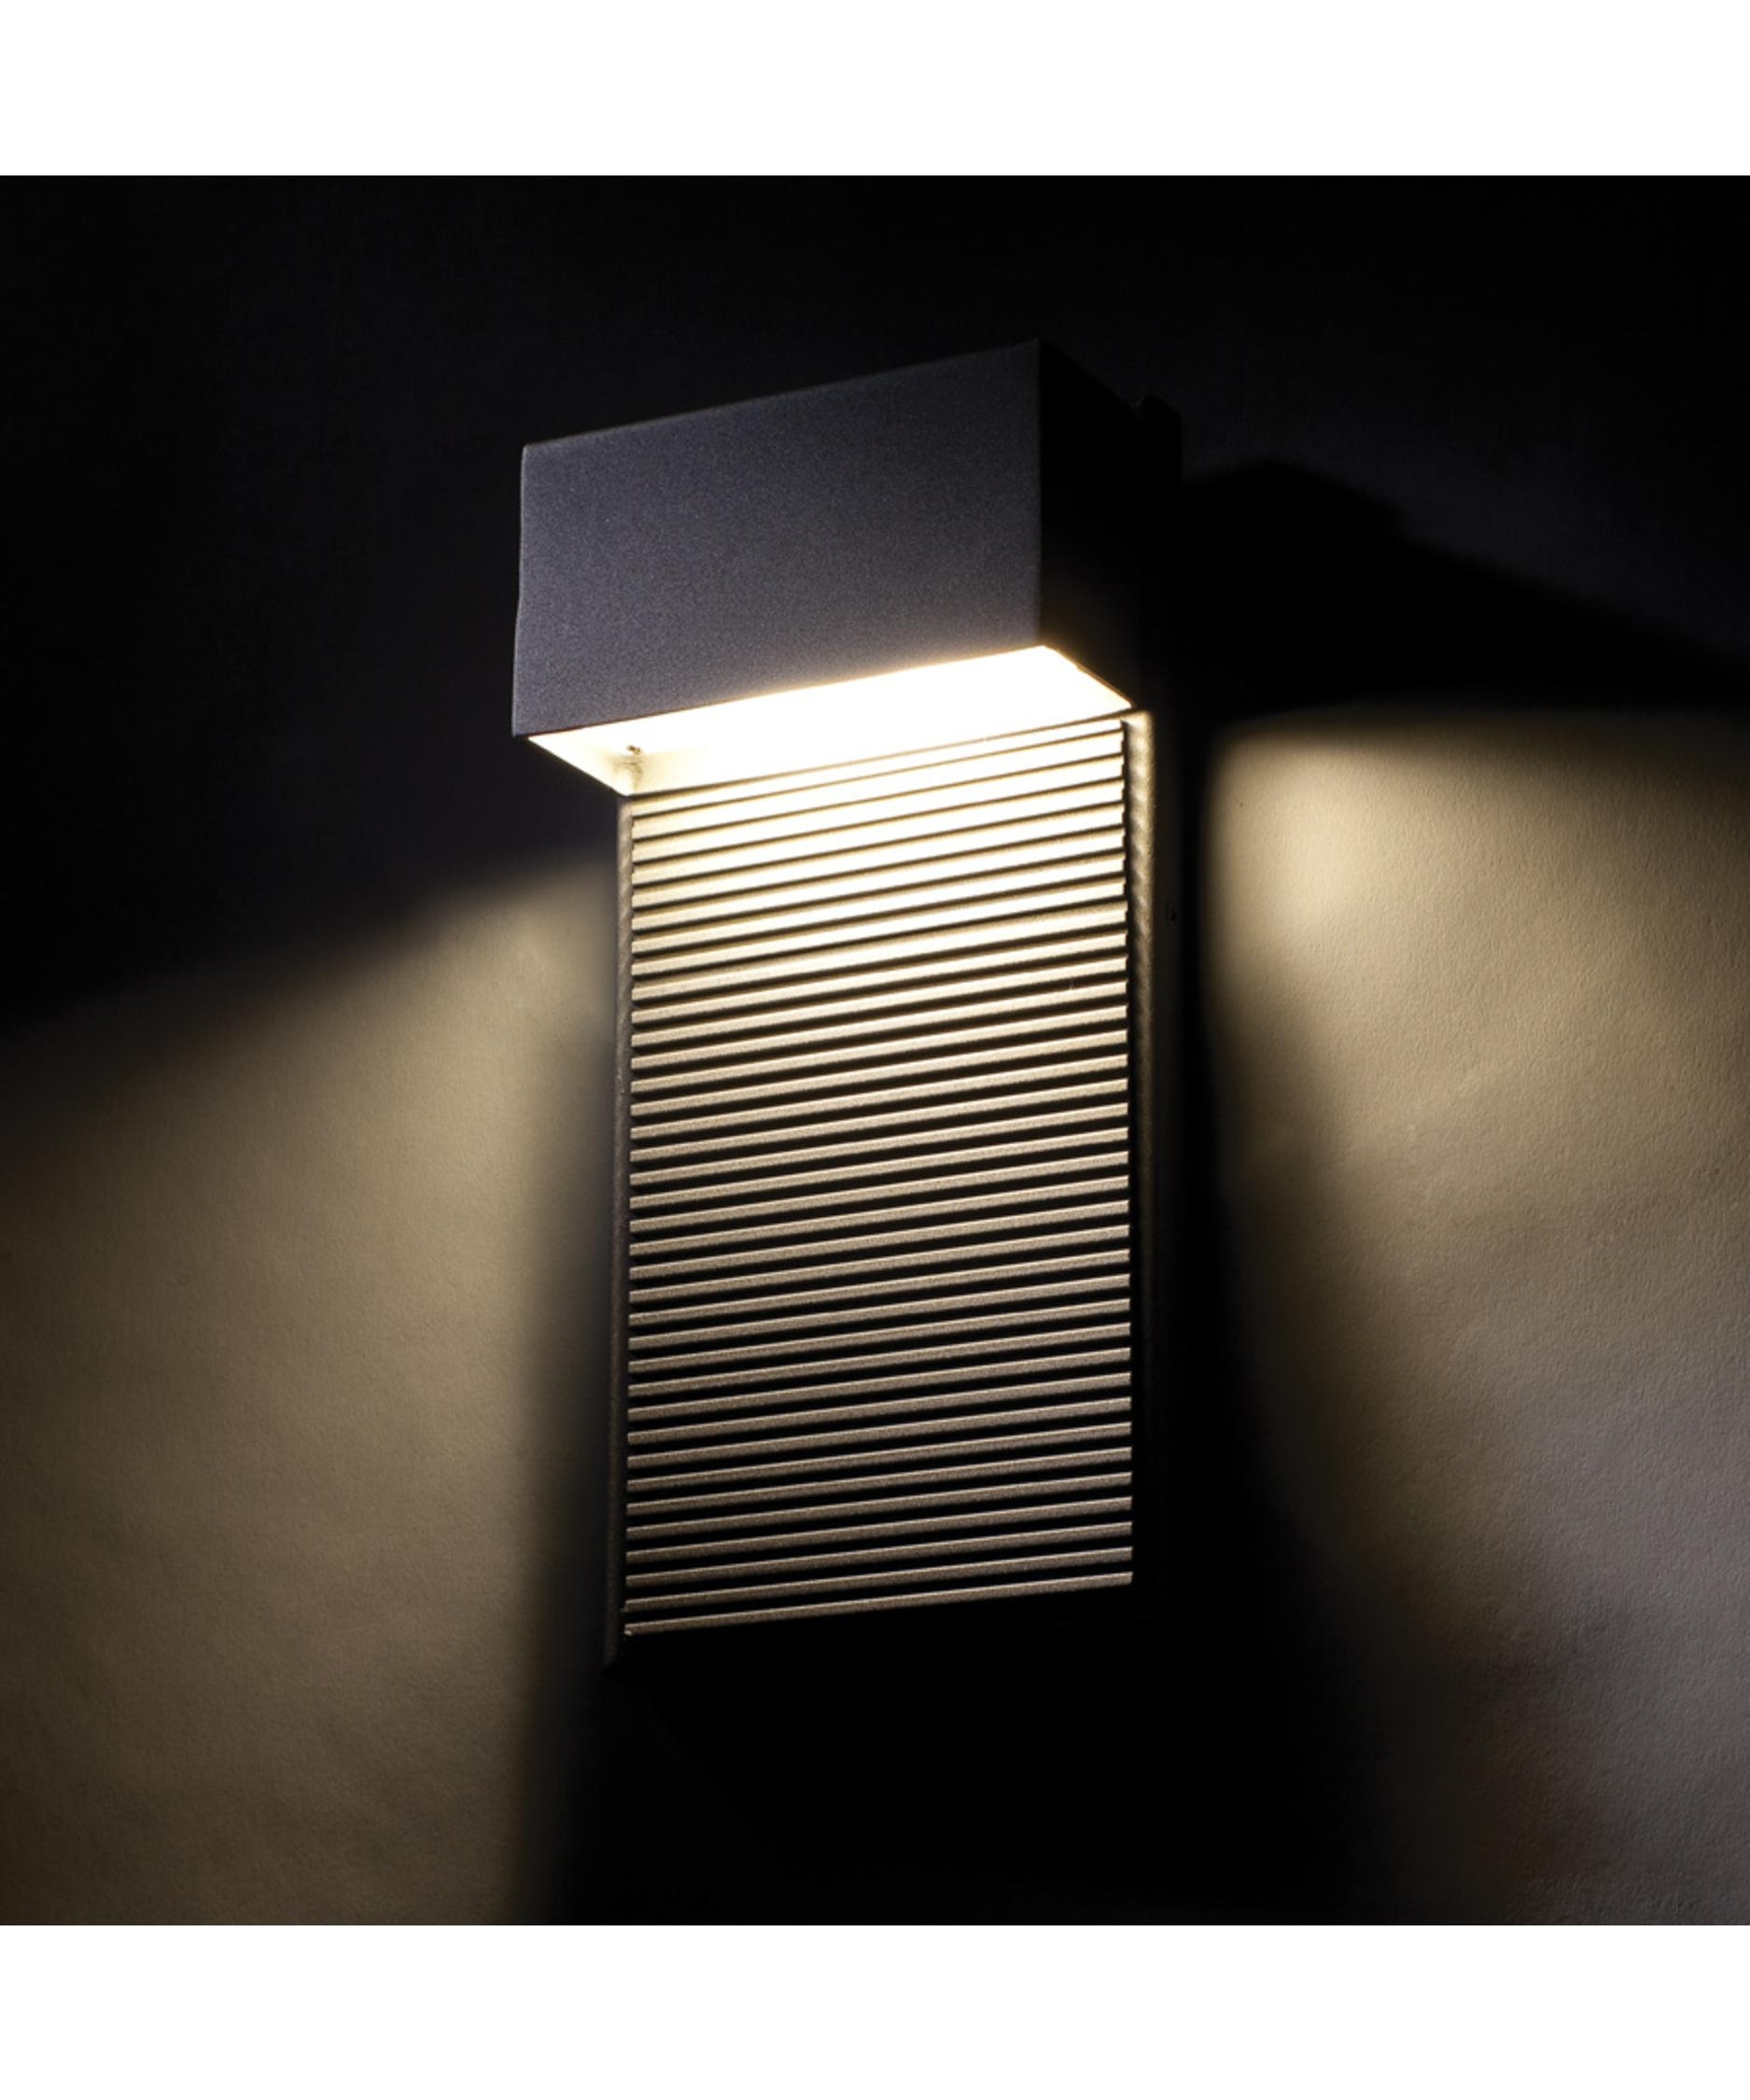 Decorations Modern Lightings Outdoor Wall Light Fixtures With Motion Inside Contemporary Porch Light Fixtures For Garden (#3 of 15)